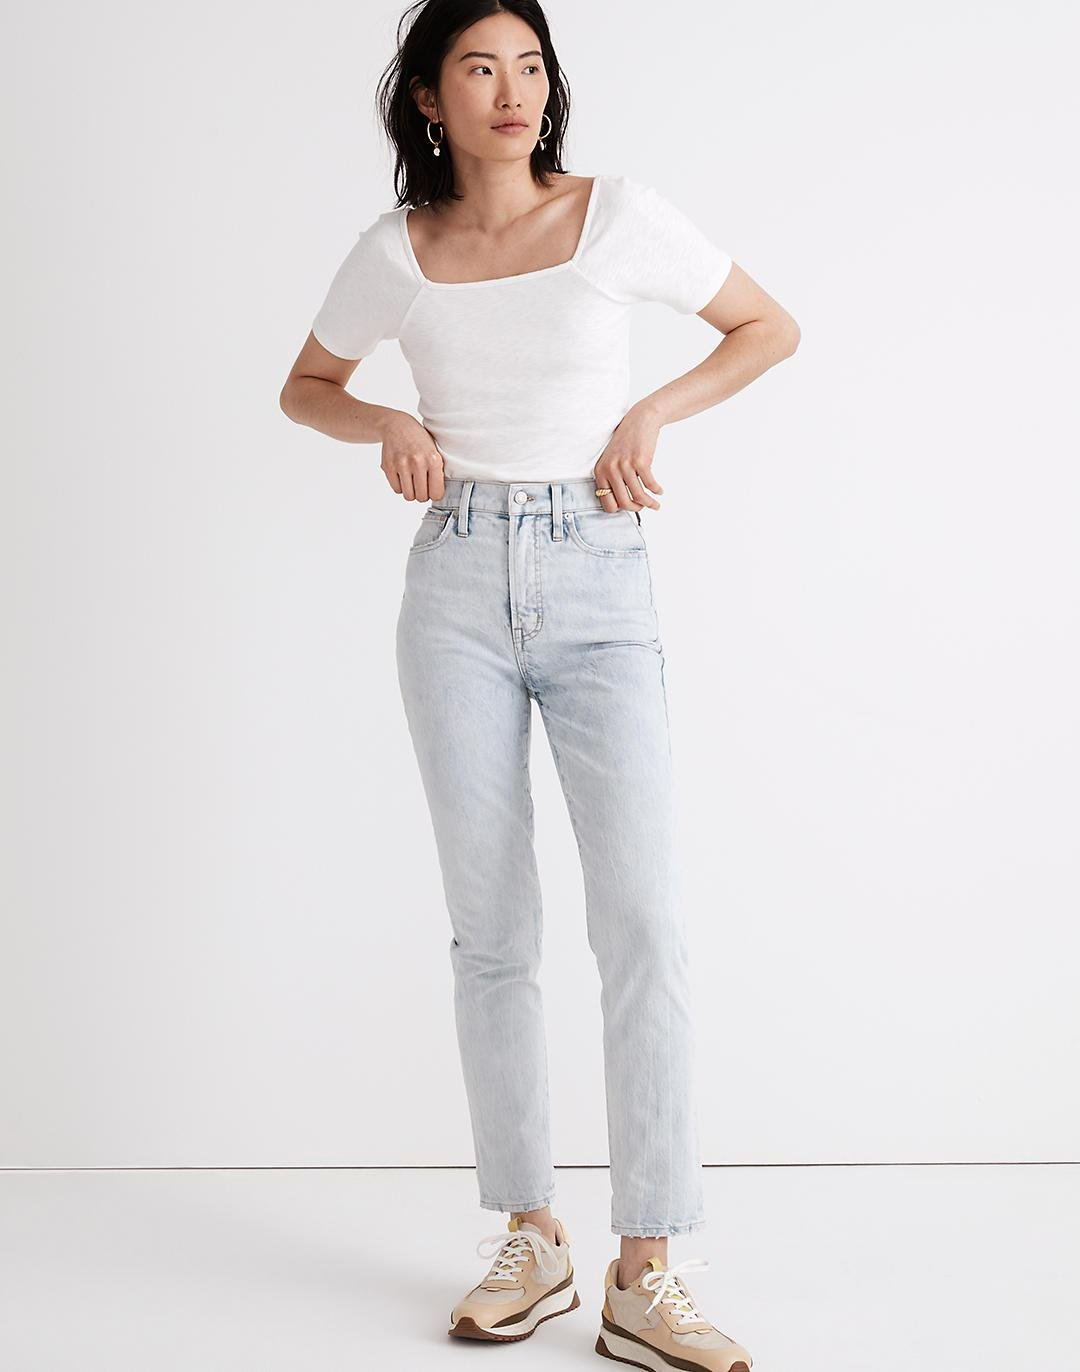 The Perfect Vintage Jean in Torrance Wash